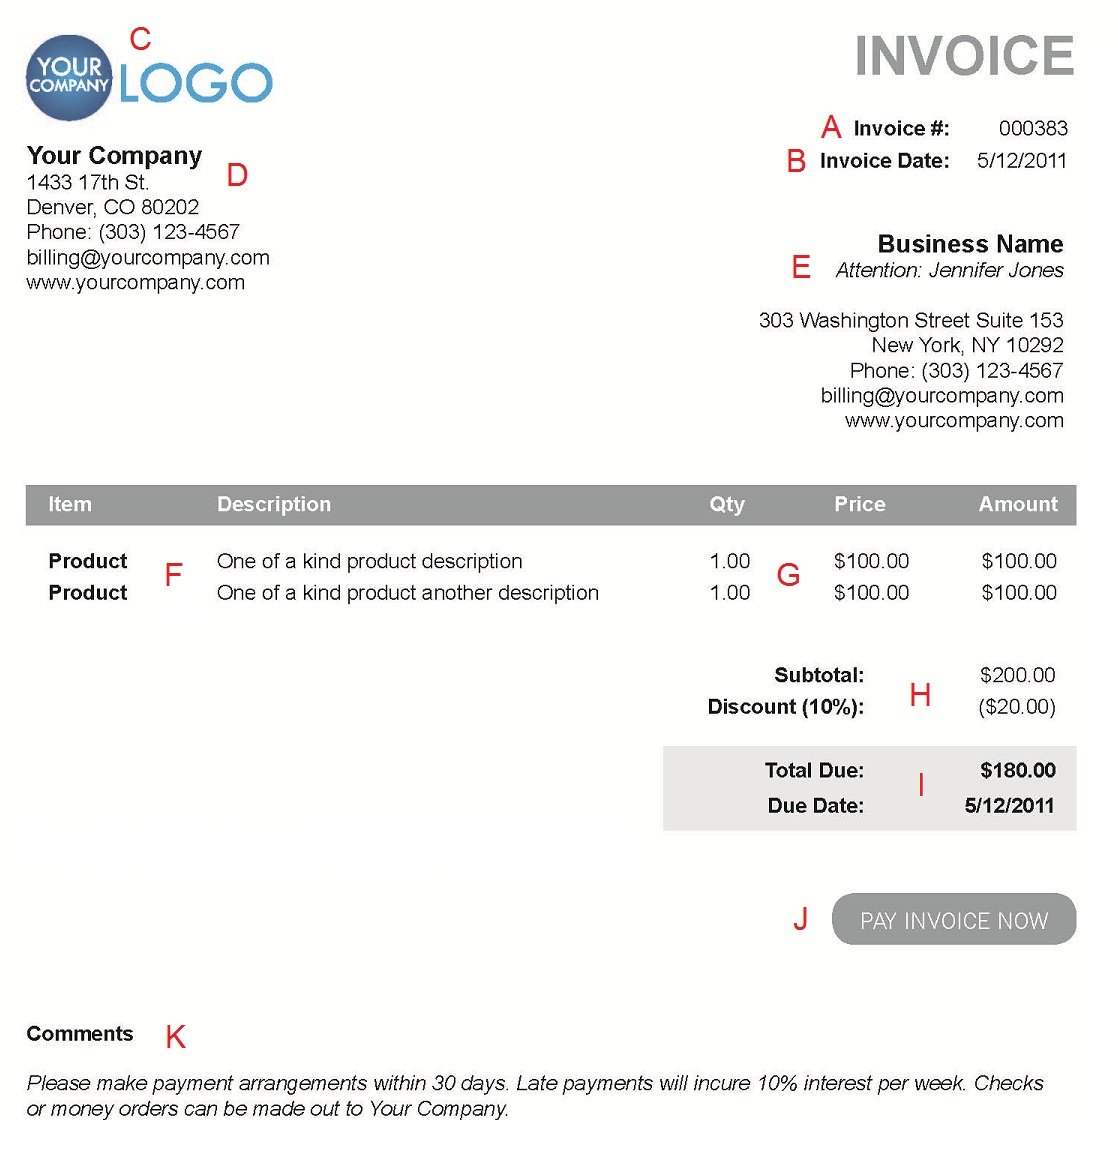 Usdgus  Picturesque The  Different Sections Of An Electronic Payment Invoice With Marvelous A  With Amazing Online Invoice Templates Also Free Word Invoice Template In Addition How To Write A Invoice And Microsoft Invoice As Well As Fedex Invoice Payment Additionally Pay Fedex Invoice From Paysimplecom With Usdgus  Marvelous The  Different Sections Of An Electronic Payment Invoice With Amazing A  And Picturesque Online Invoice Templates Also Free Word Invoice Template In Addition How To Write A Invoice From Paysimplecom